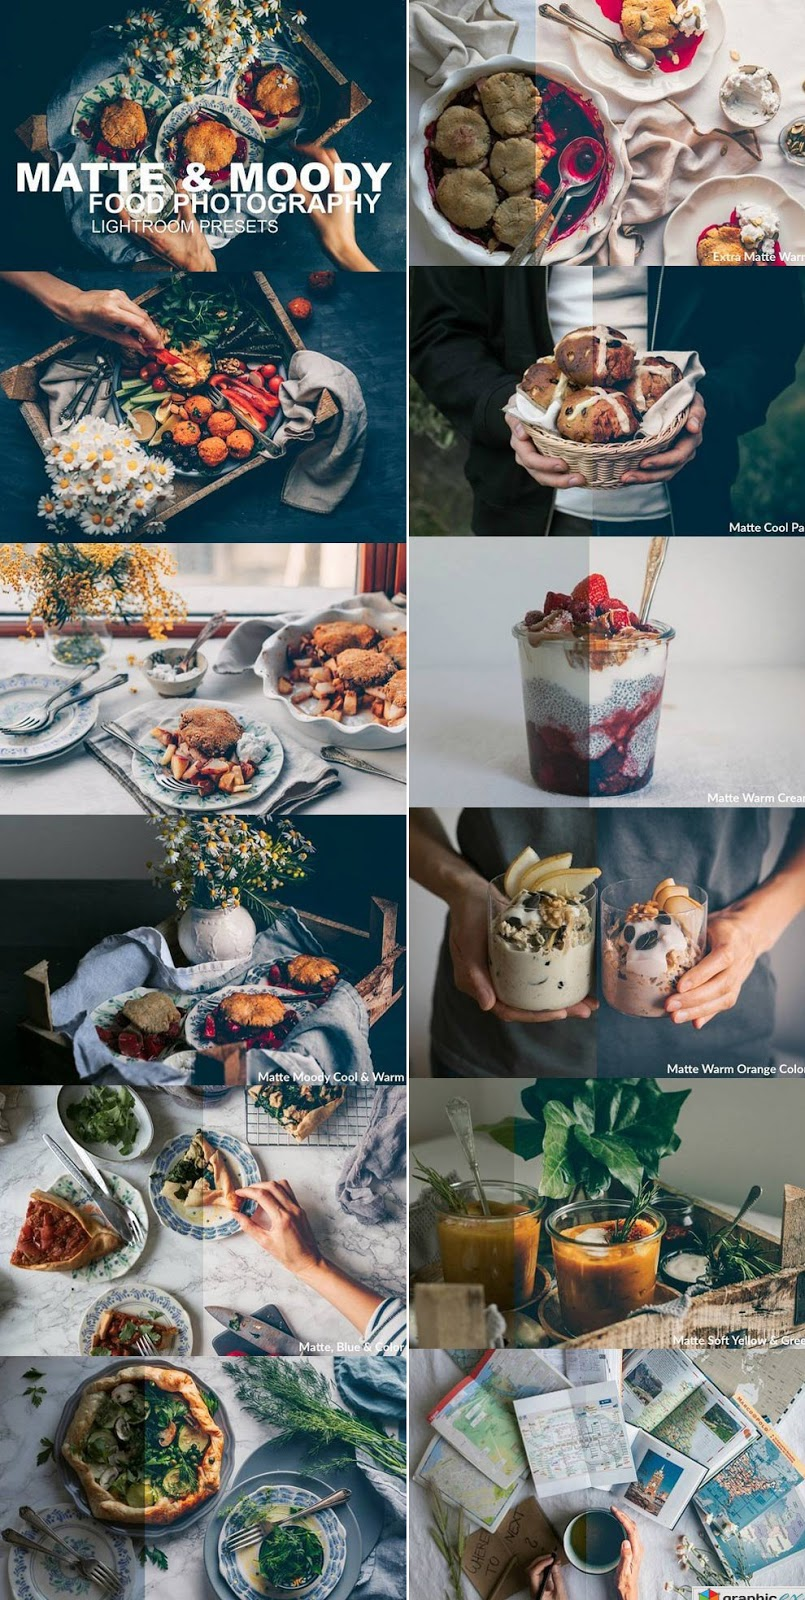 Matte & Moody Food Photography Lightroom Presets ~ Free